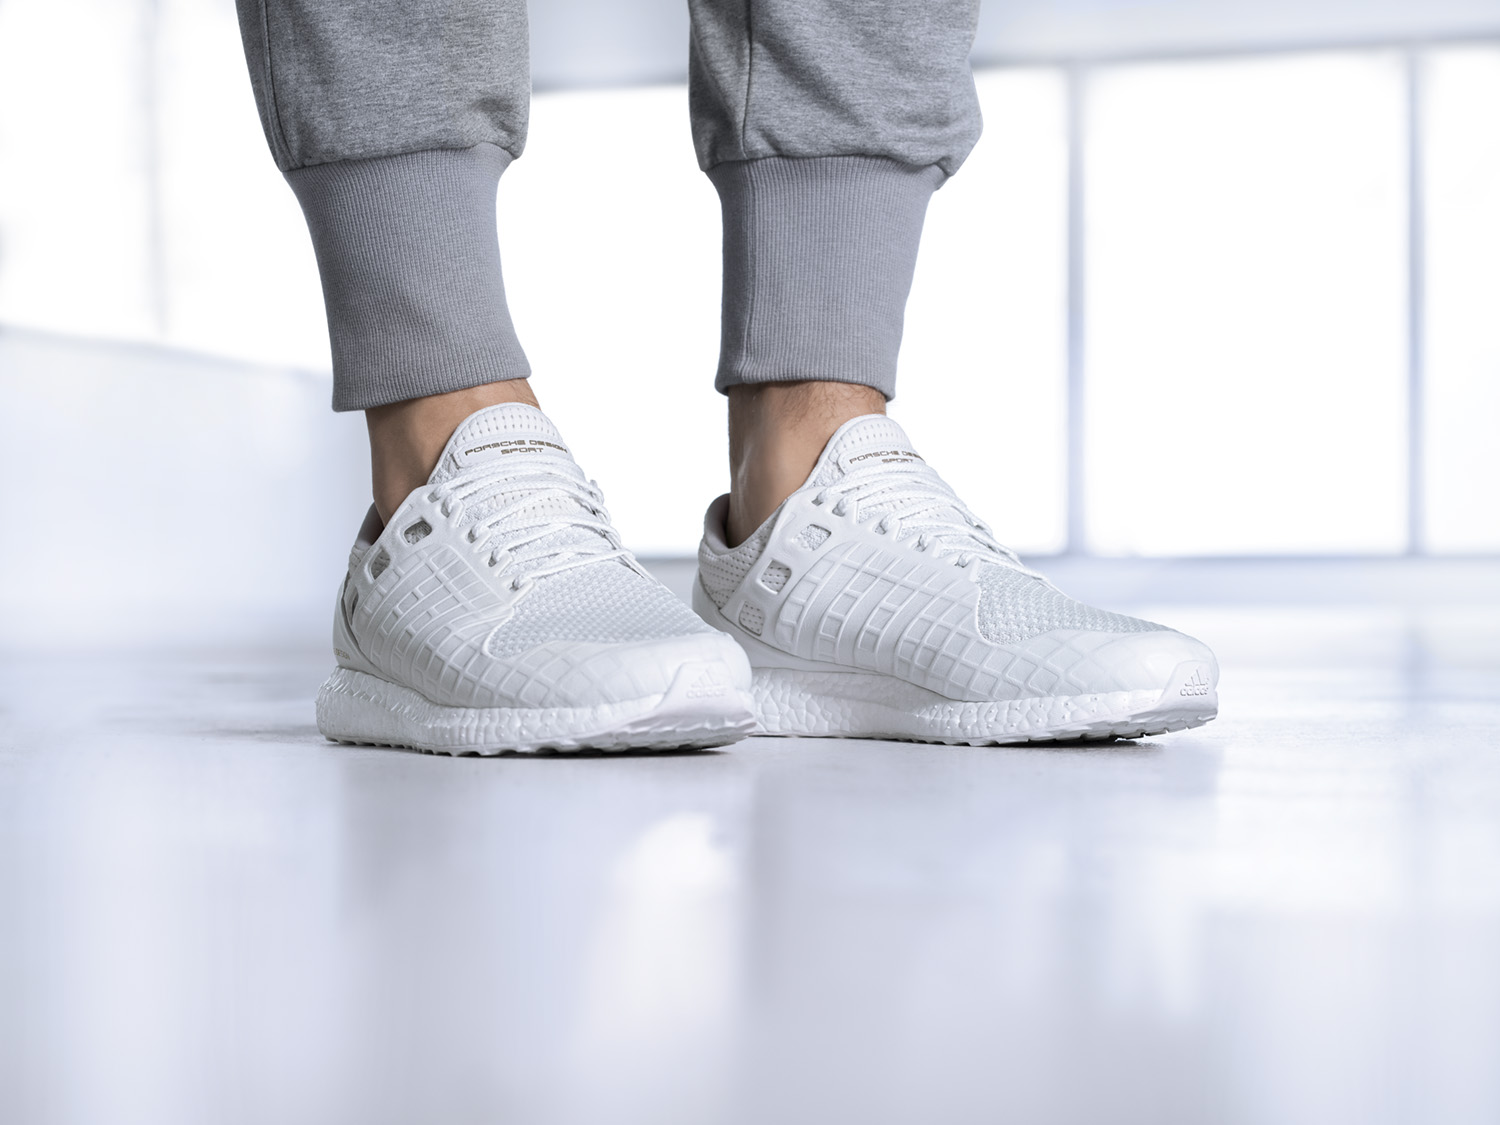 Porsche Design Sport by adidas releases the all white UltraBOOST-3